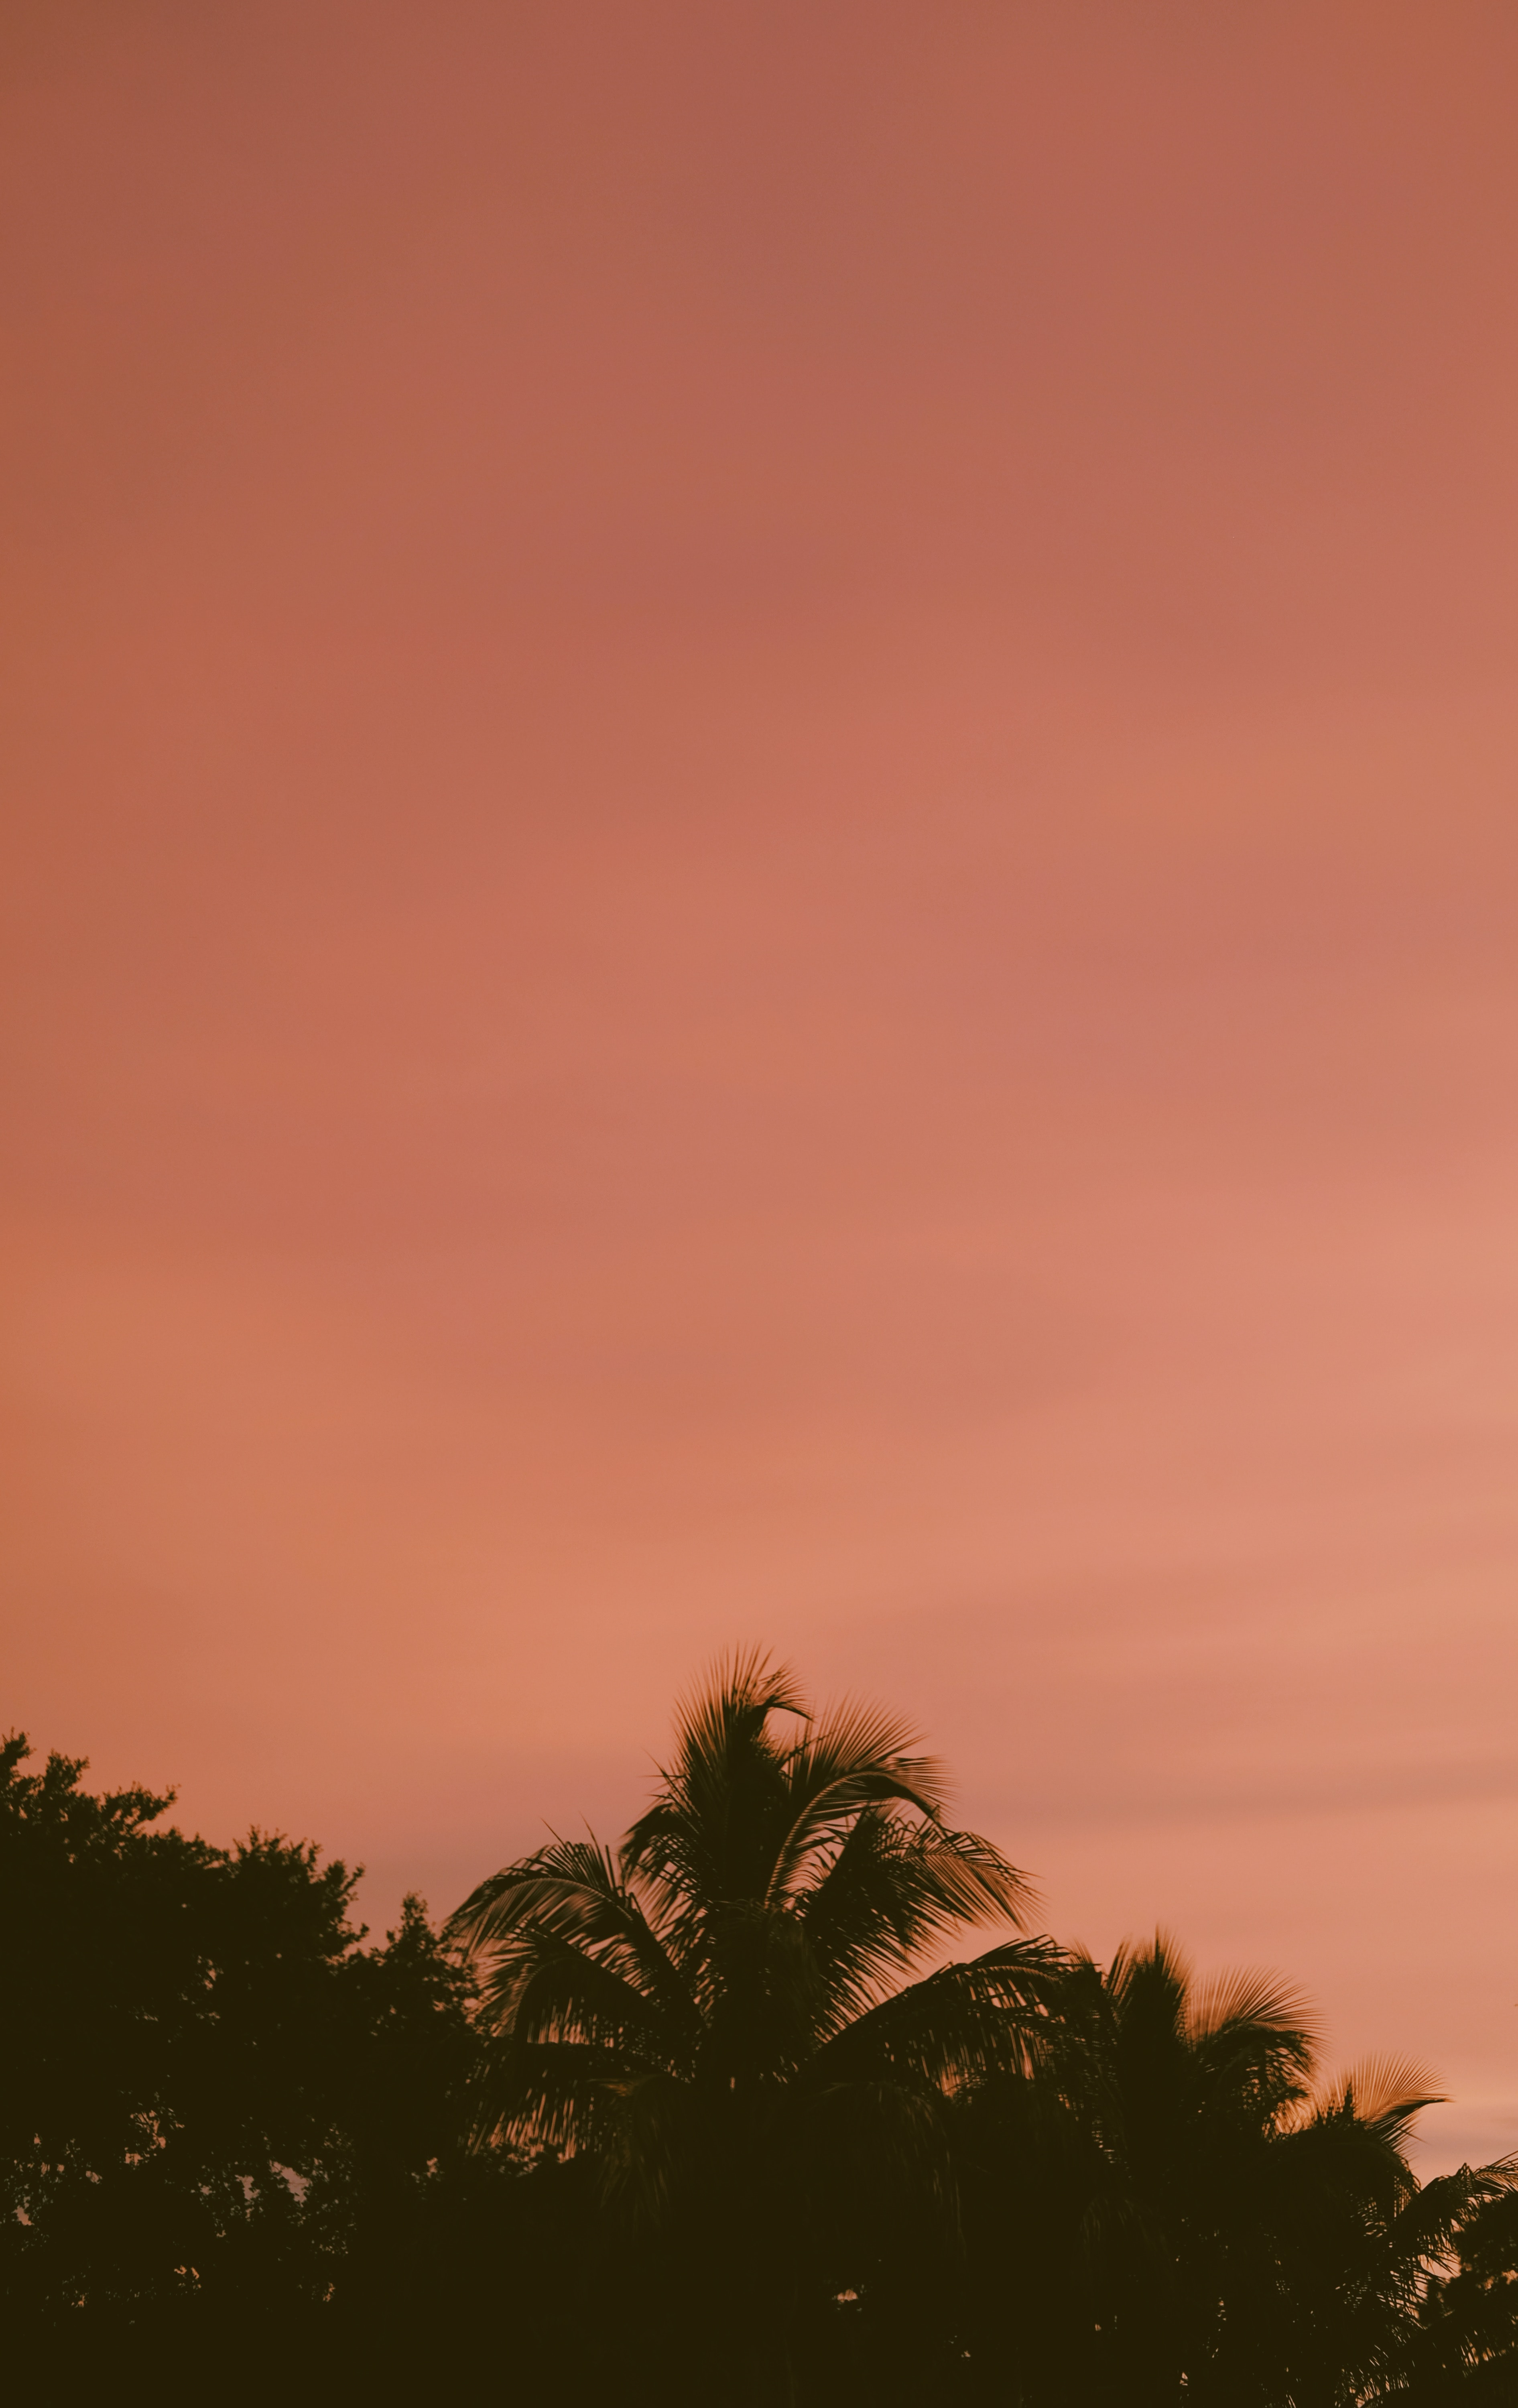 113188 download wallpaper Nature, Sky, Dusk, Twilight, Sunset, Dark, Palms screensavers and pictures for free